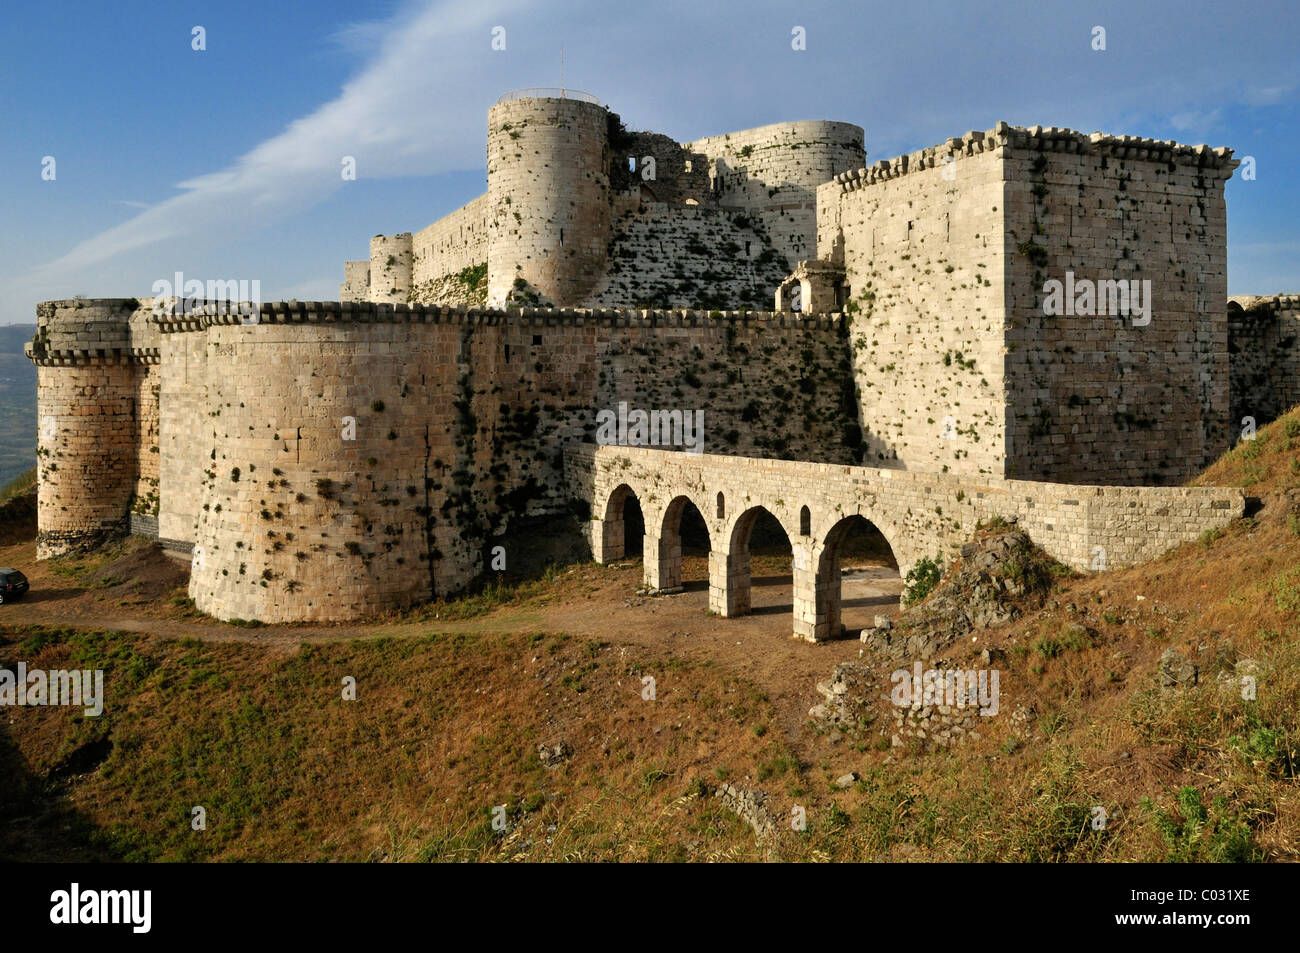 Crusader fortress Crac, Krak des Chavaliers, Qalaat al Husn, Hisn, Unesco World Heritage Site, Syria, Middle East, - Stock Image